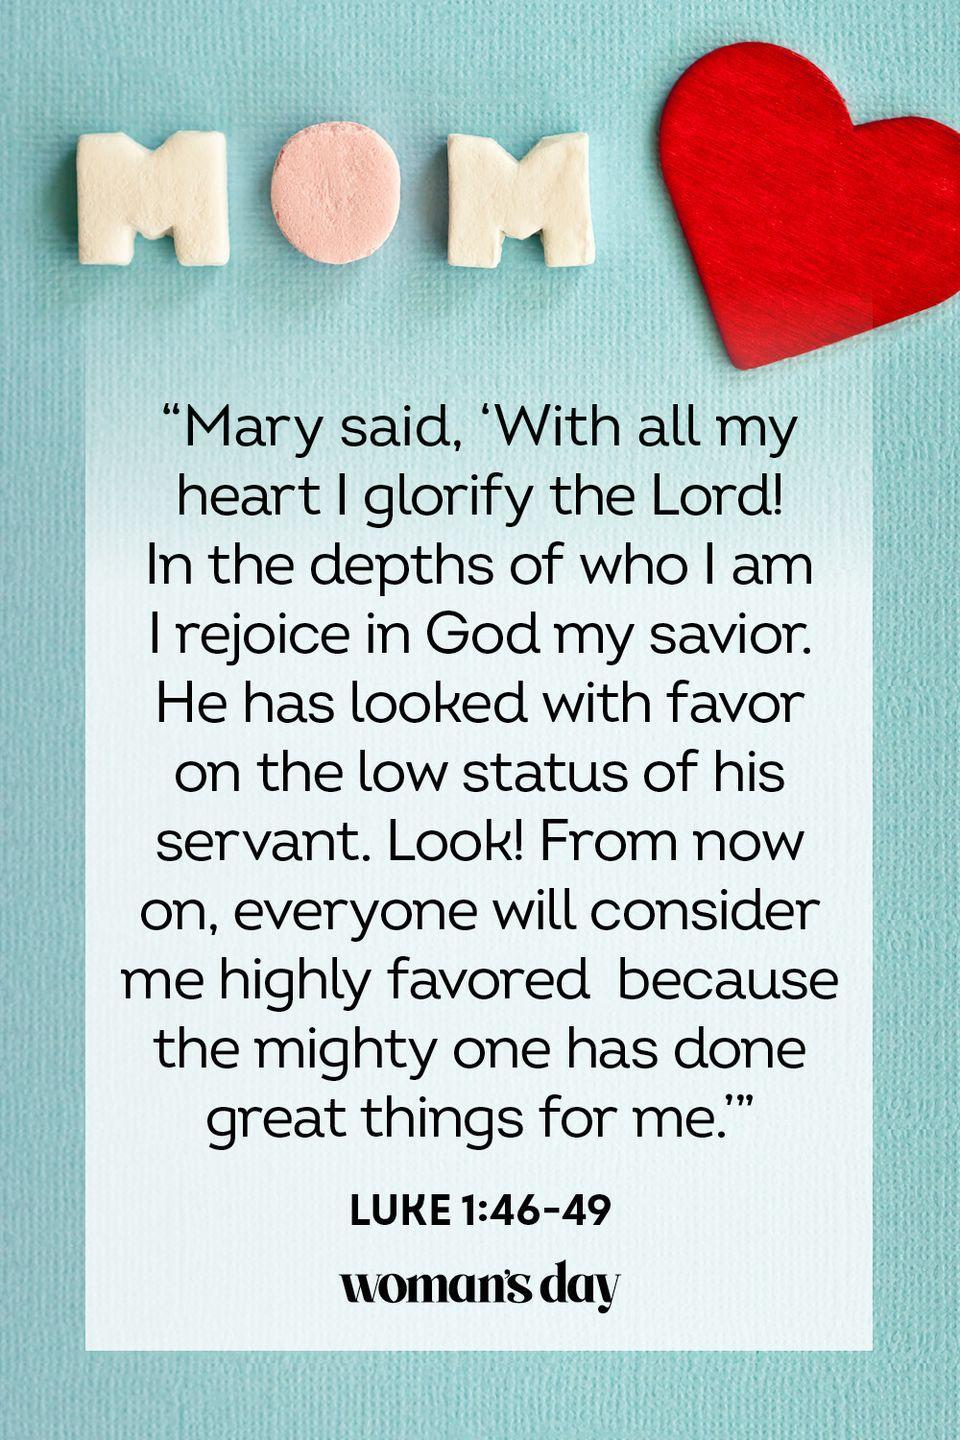 "<p>""Mary said, 'With all my heart I glorify the Lord! In the depths of who I am I rejoice in God my savior. He has looked with favor on the low status of his servant. Look! From now on, everyone will consider me highly favored because the mighty one has done great things for me.'""</p><p><strong>The Good News: </strong>Becoming a mother is a blessing, and to bear children is to receive a gift from the Lord.</p>"